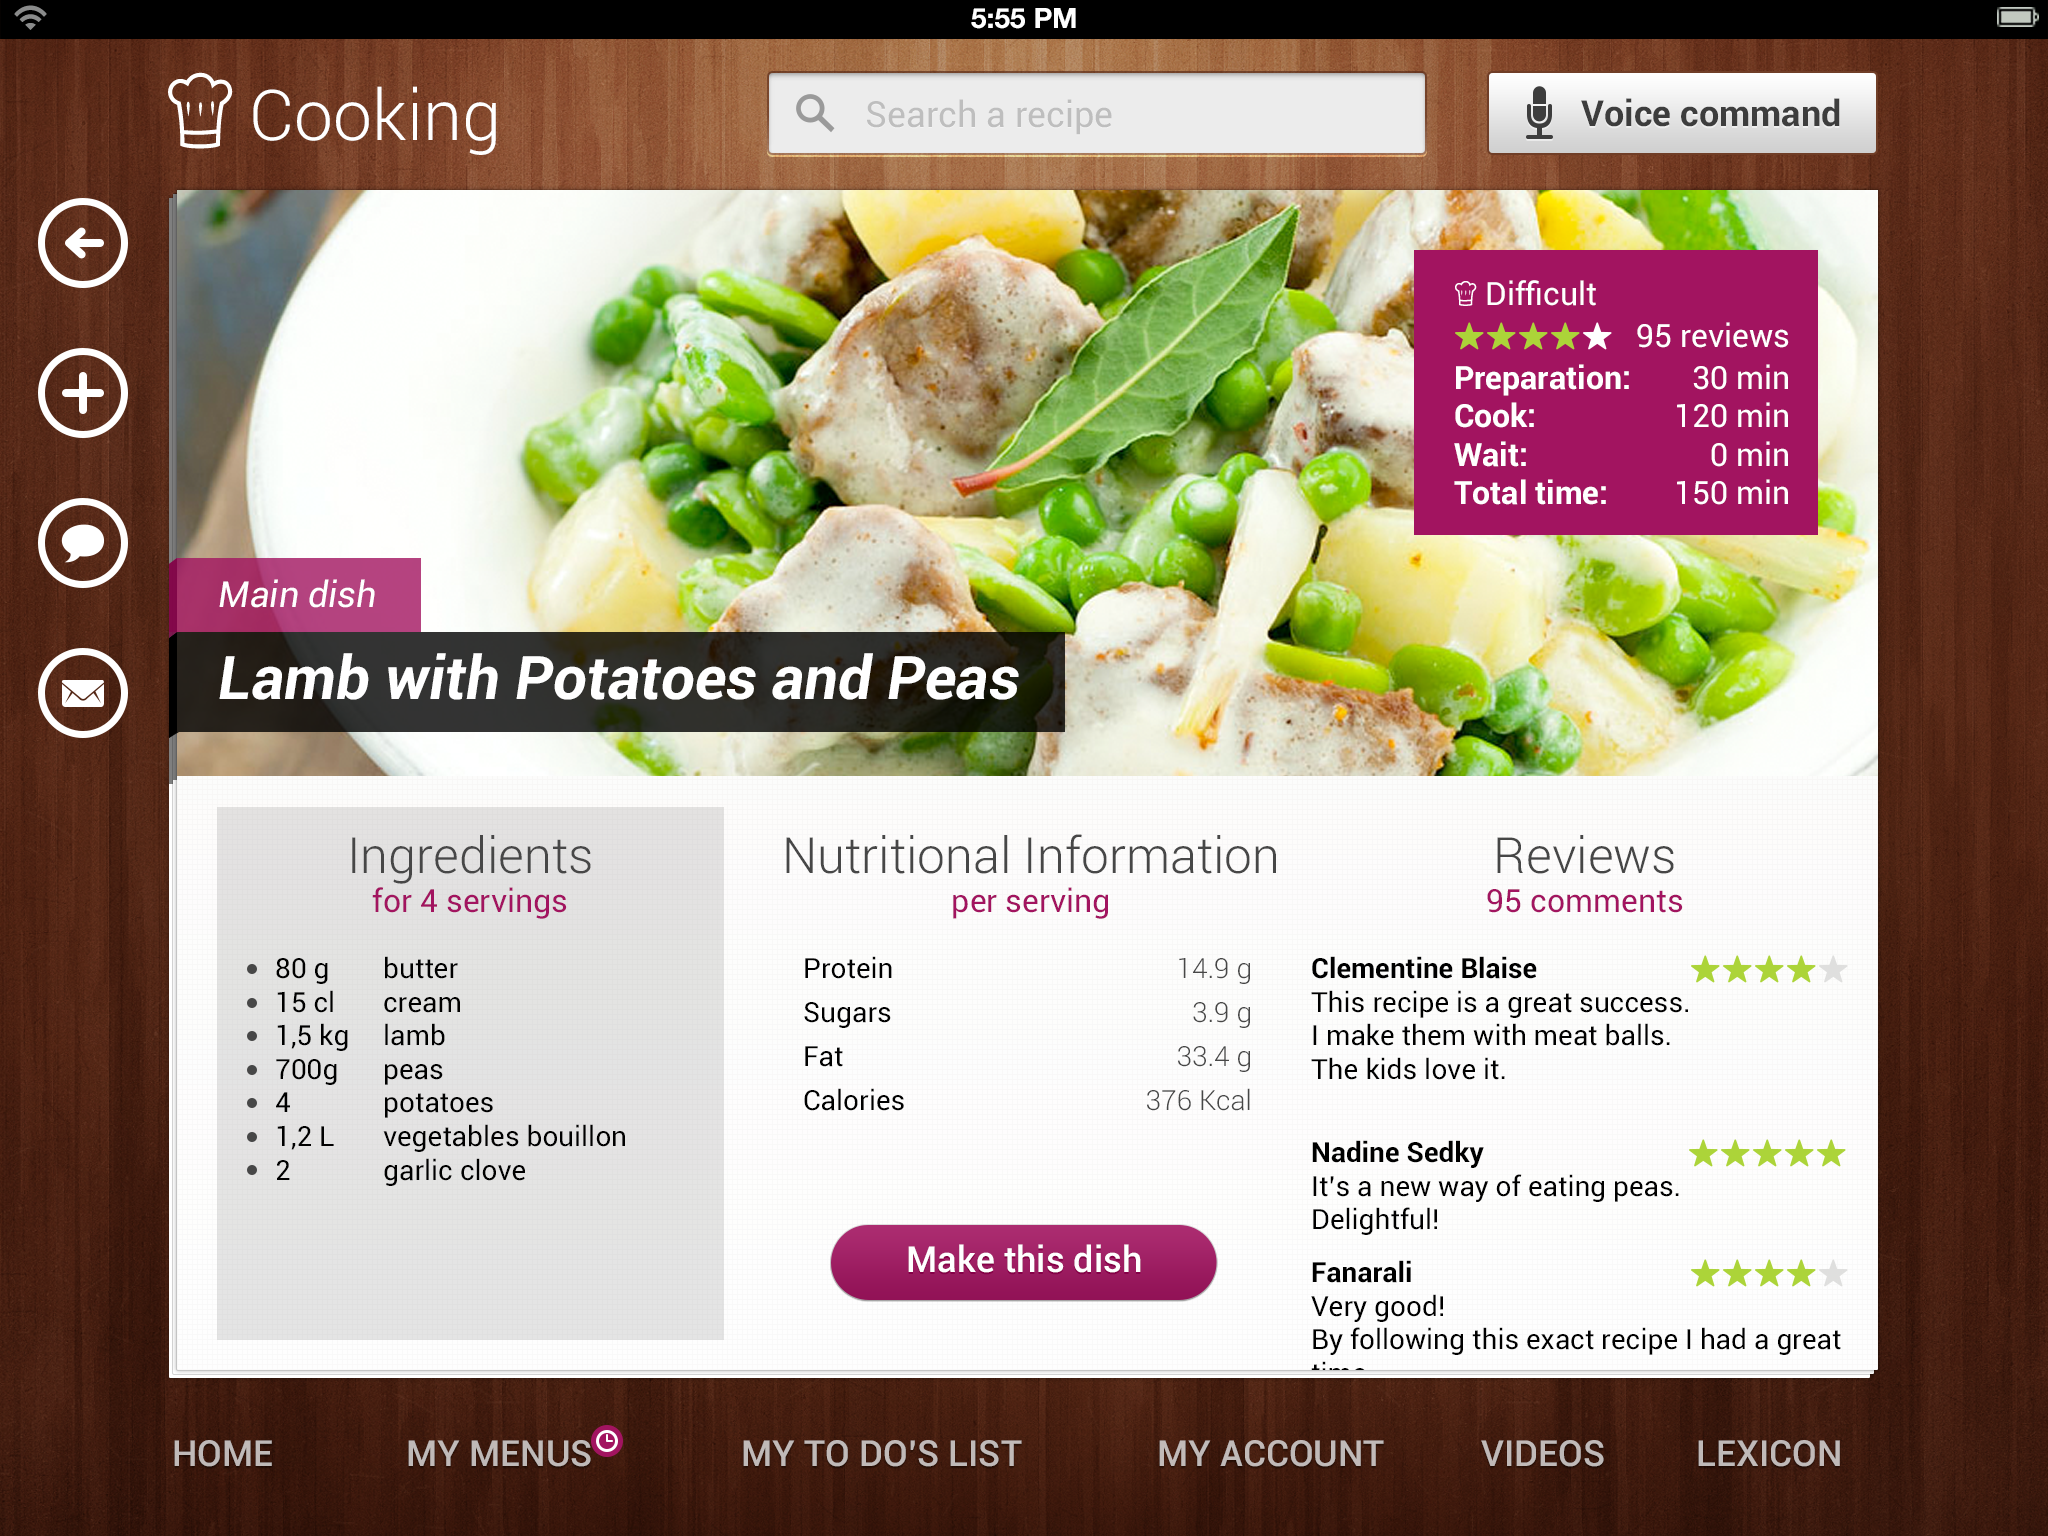 Johan marie projects cooking ipad dribbble recipe cooking ipad app forumfinder Choice Image